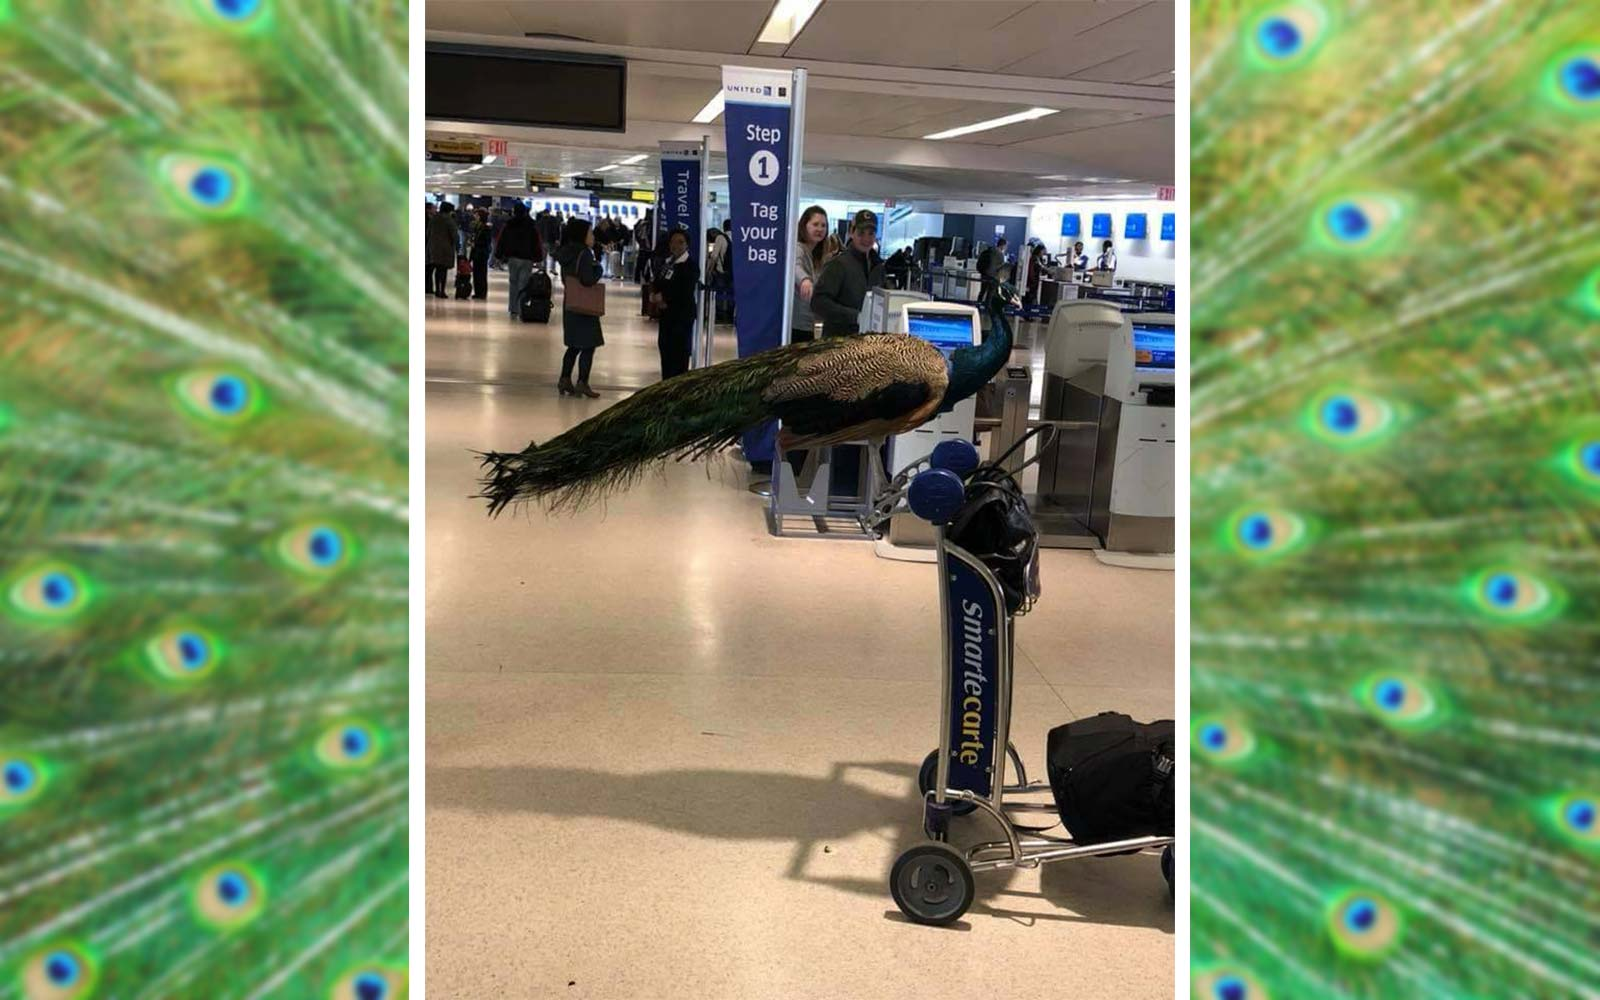 Emotional Support Peacock Famously Banned From United Flight Unexpectedly Dies